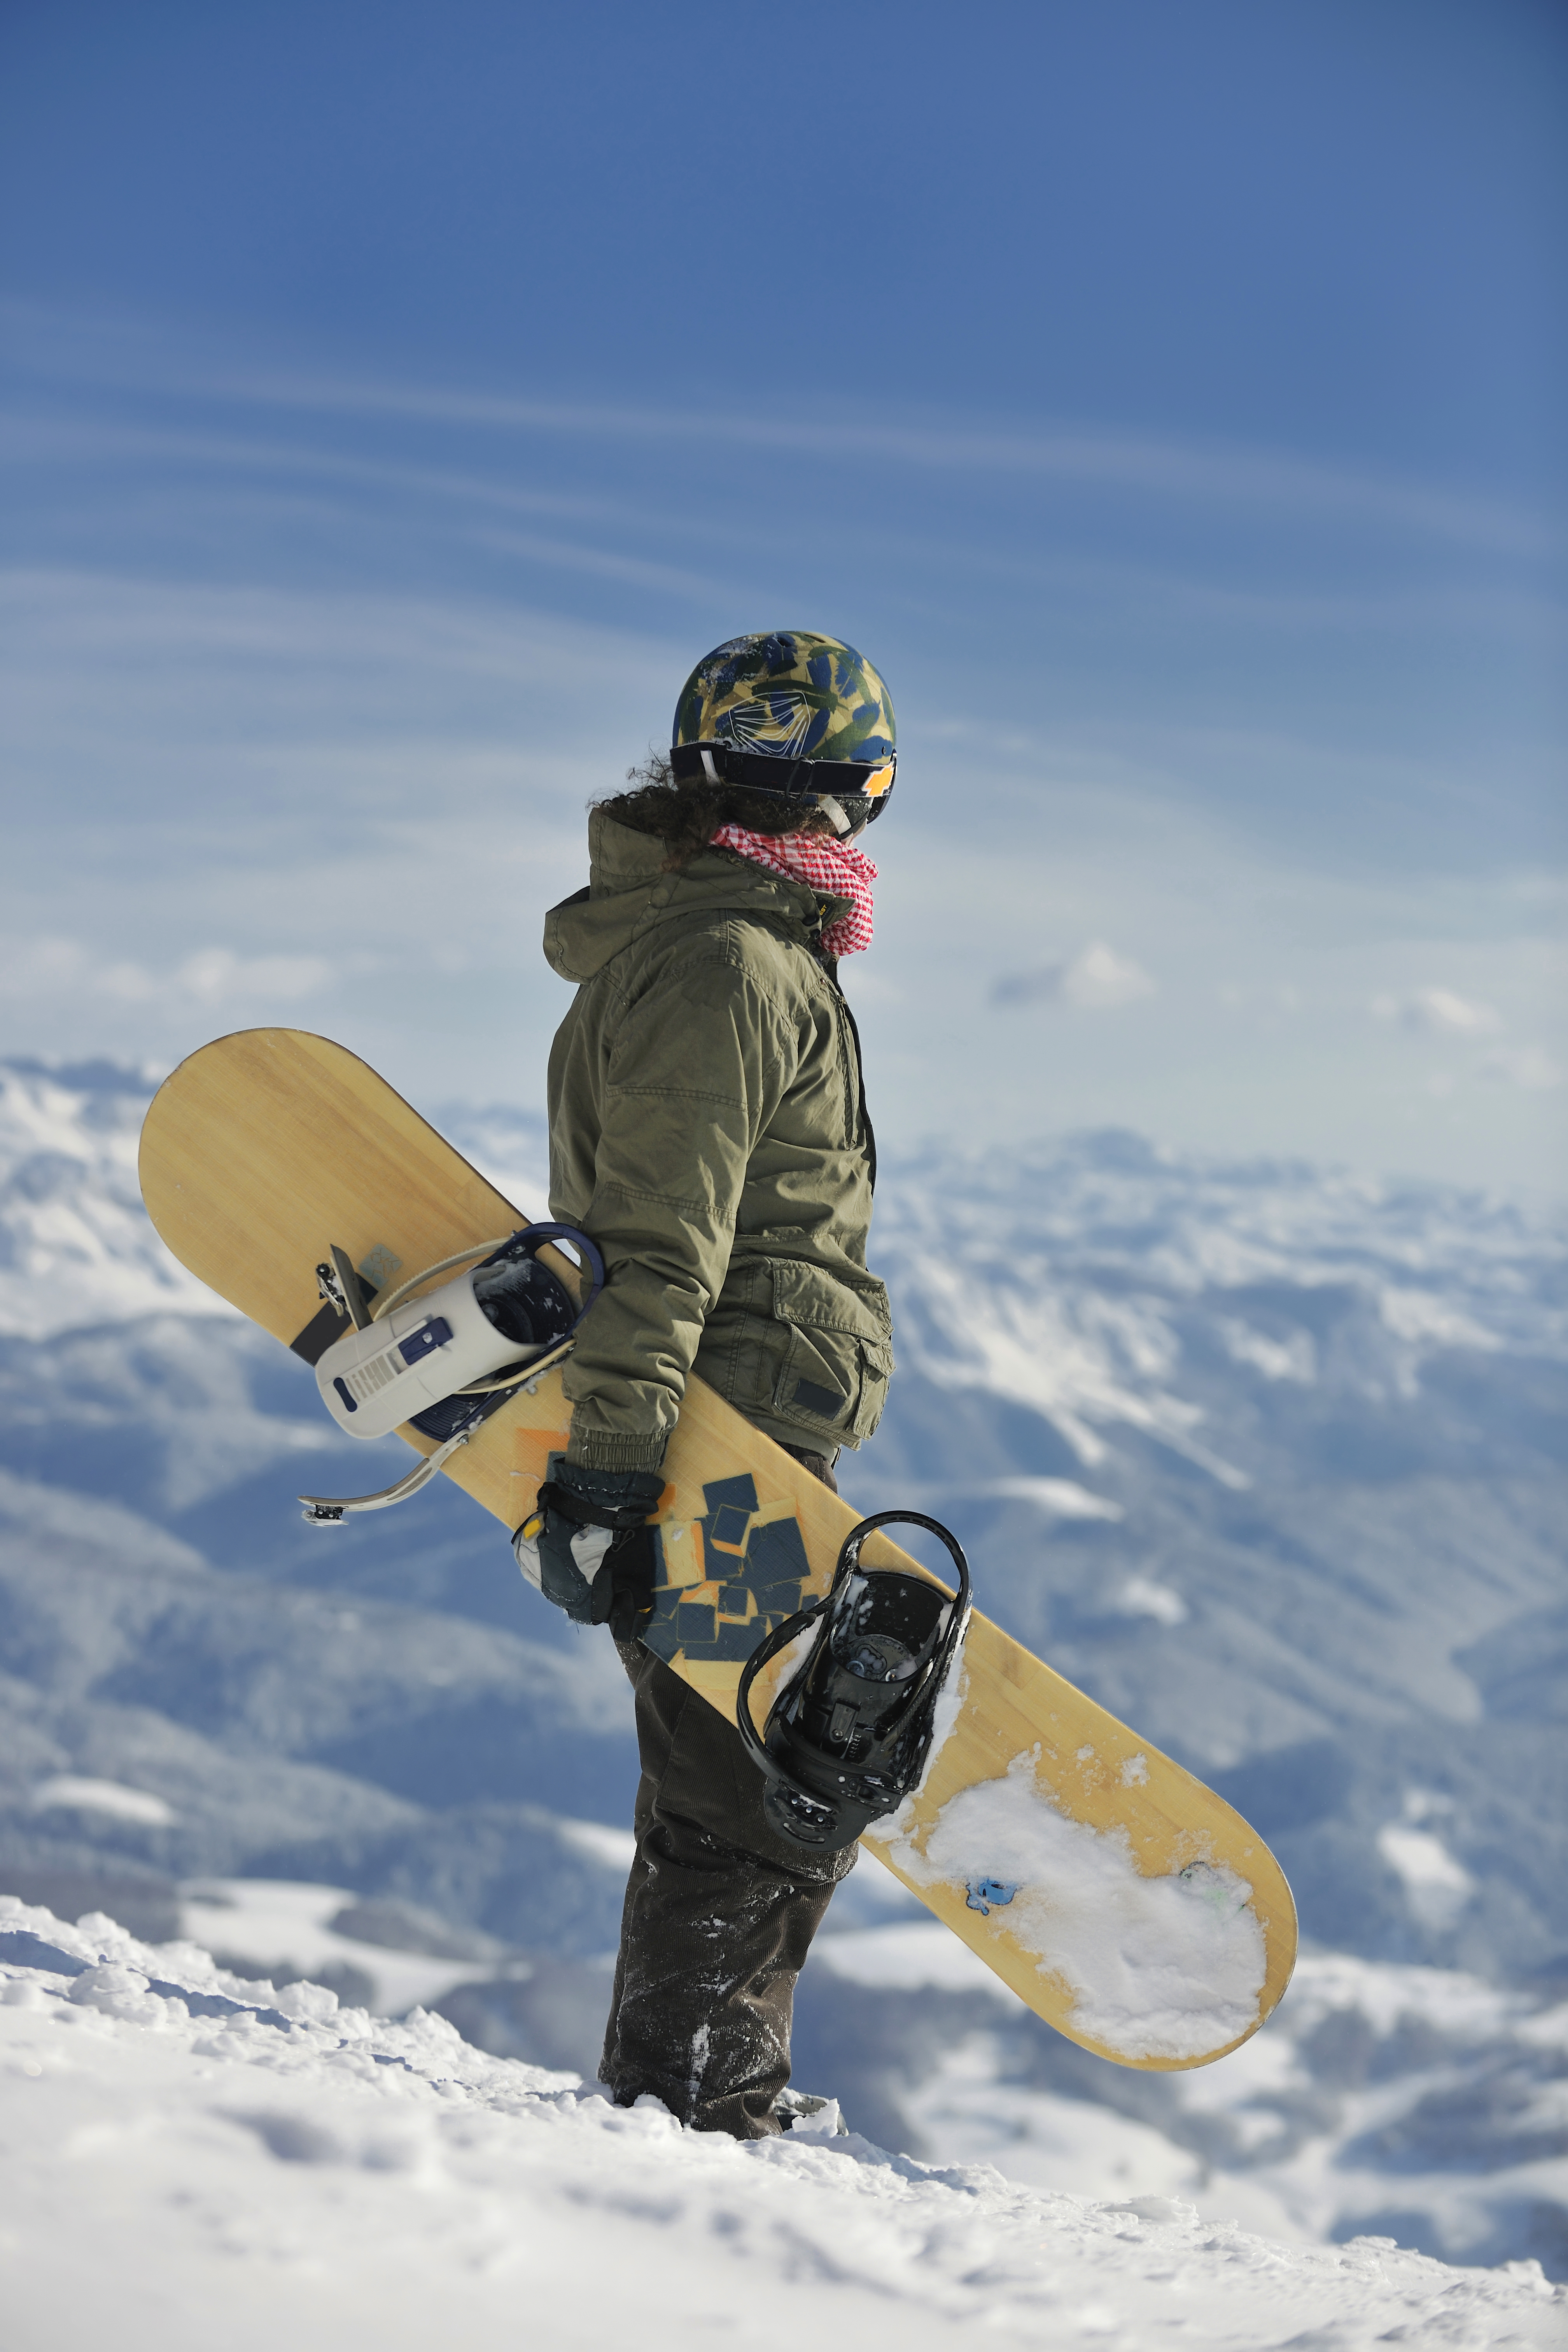 Try your hand snowboarding at four resorts in Québec City. Here a snowboarder is relaxing on a sunny day.